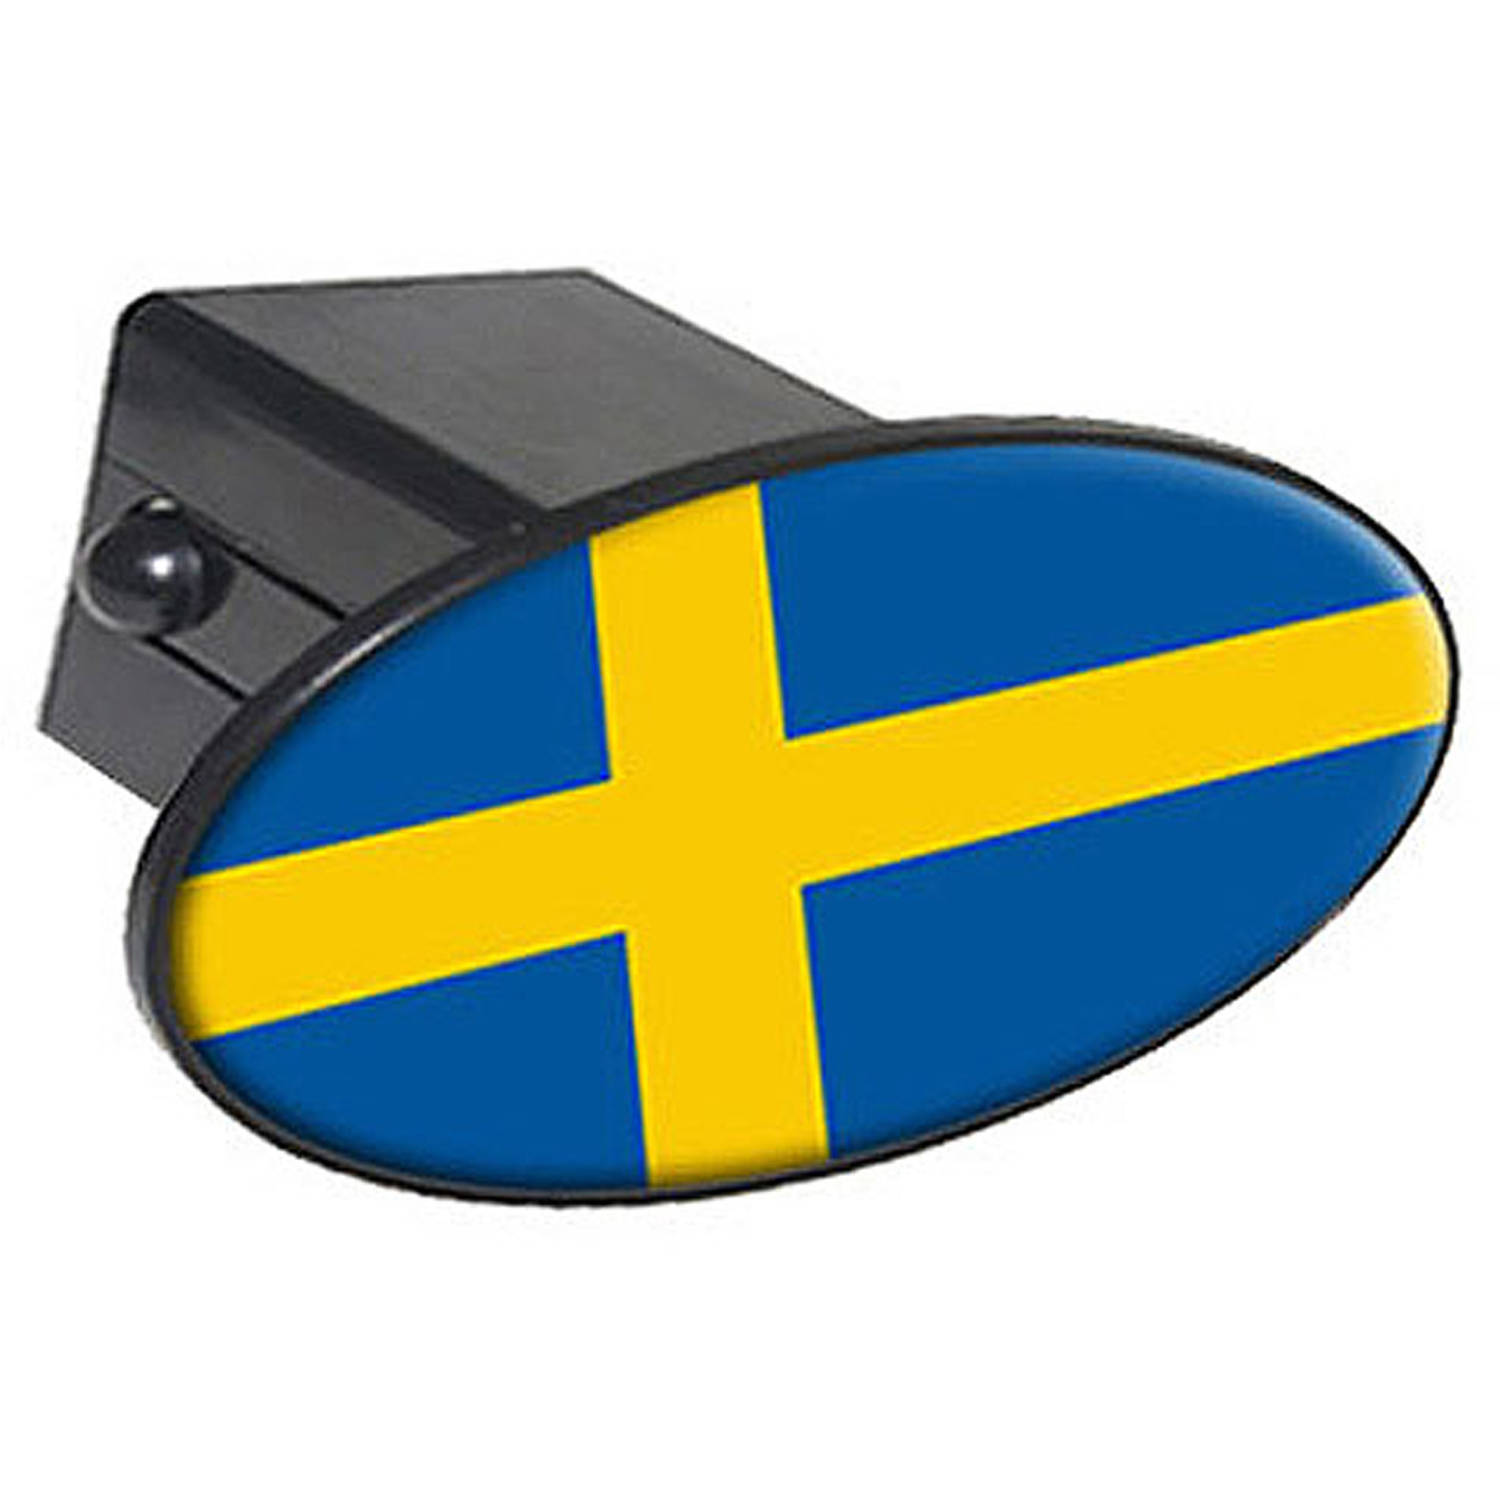 "Sweden Flag - Country 2"" Oval Tow Trailer Hitch Cover Plug Insert"